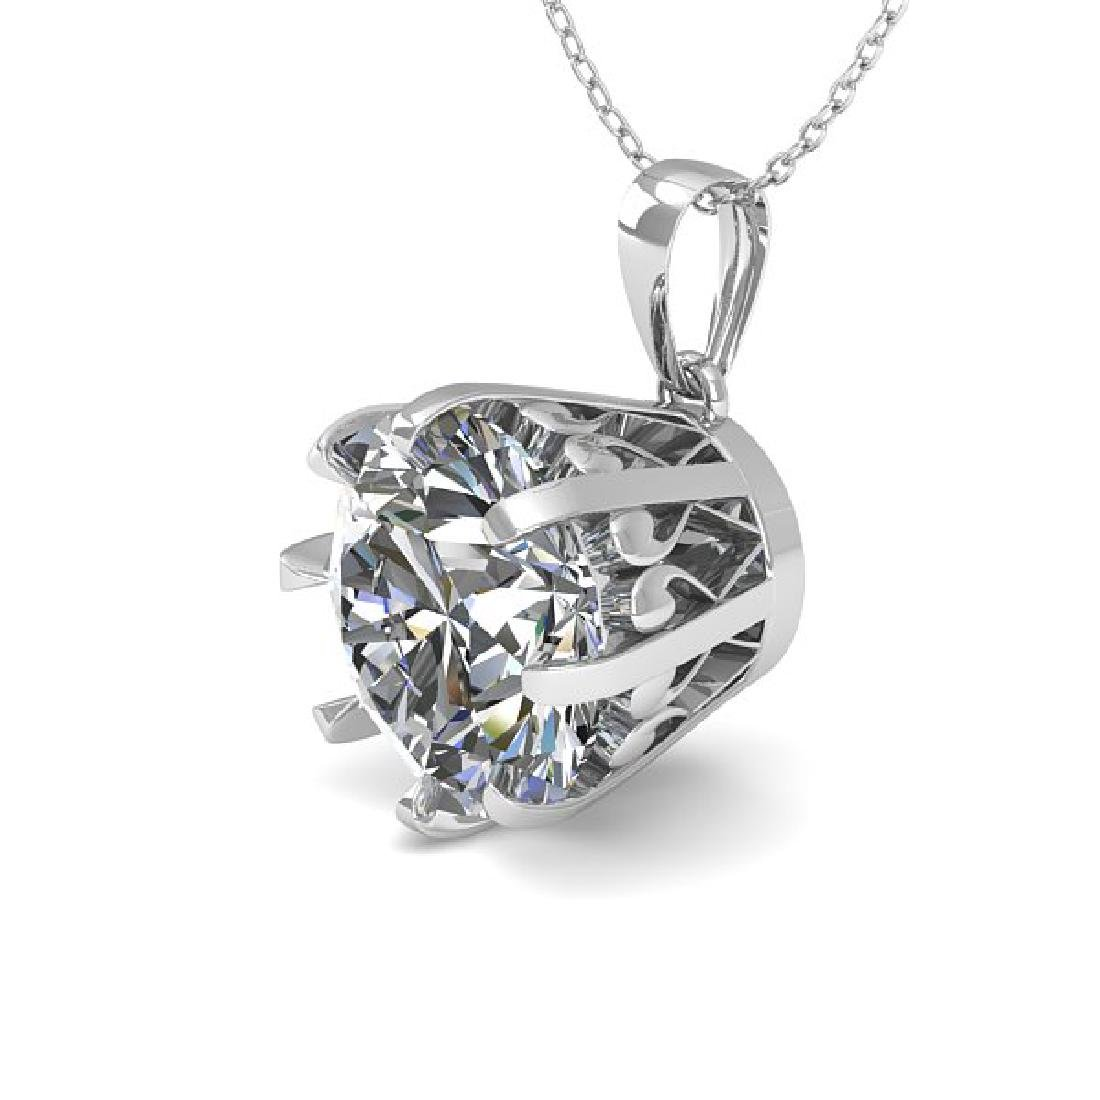 2 CTW VS/SI Diamond Solitaire Necklace 18K White Gold